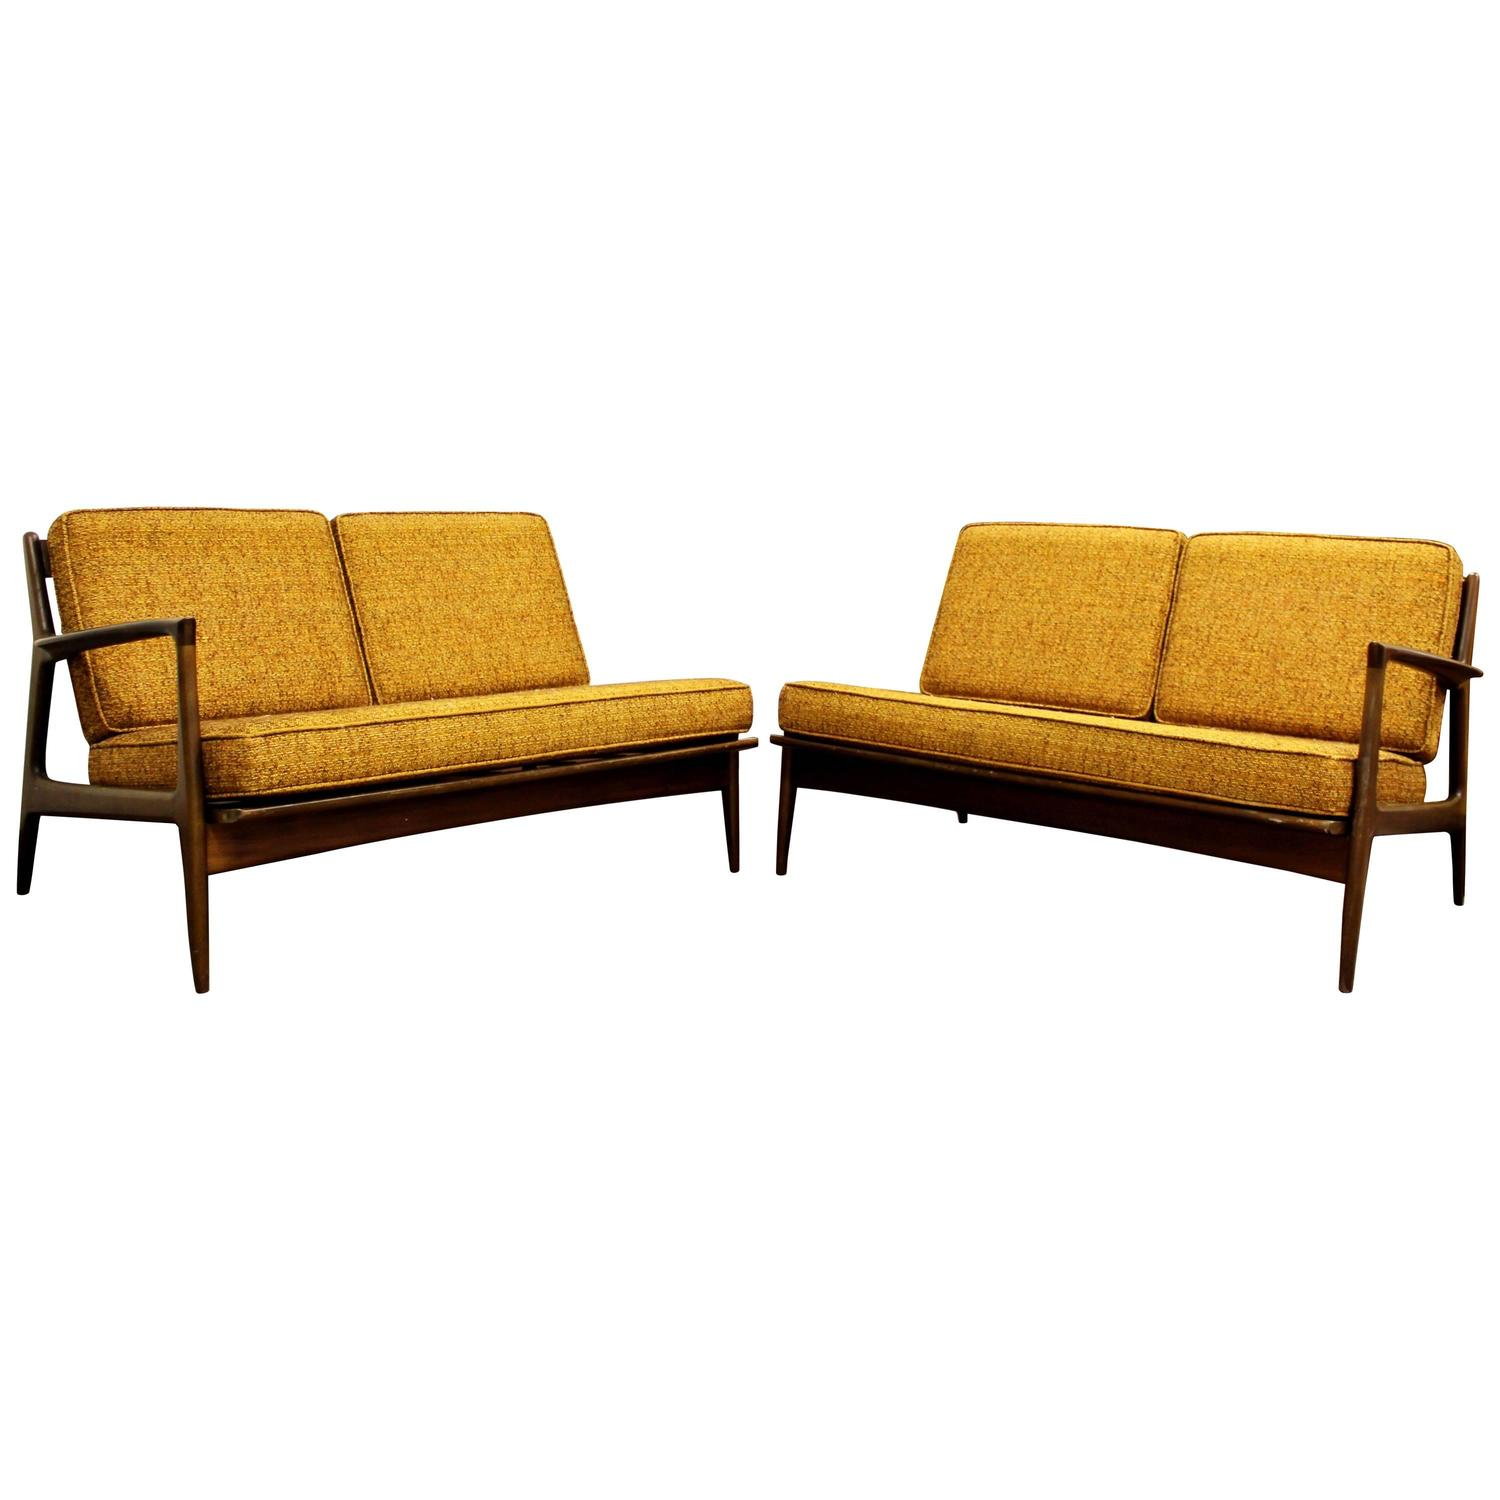 This sculptural pair of lounge chairs by ib kofod larsen is no longer - Mid Century Modern Danish Ib Kofod Larsen Selig Pair Of Walnut Sofa Sectional For Sale At 1stdibs